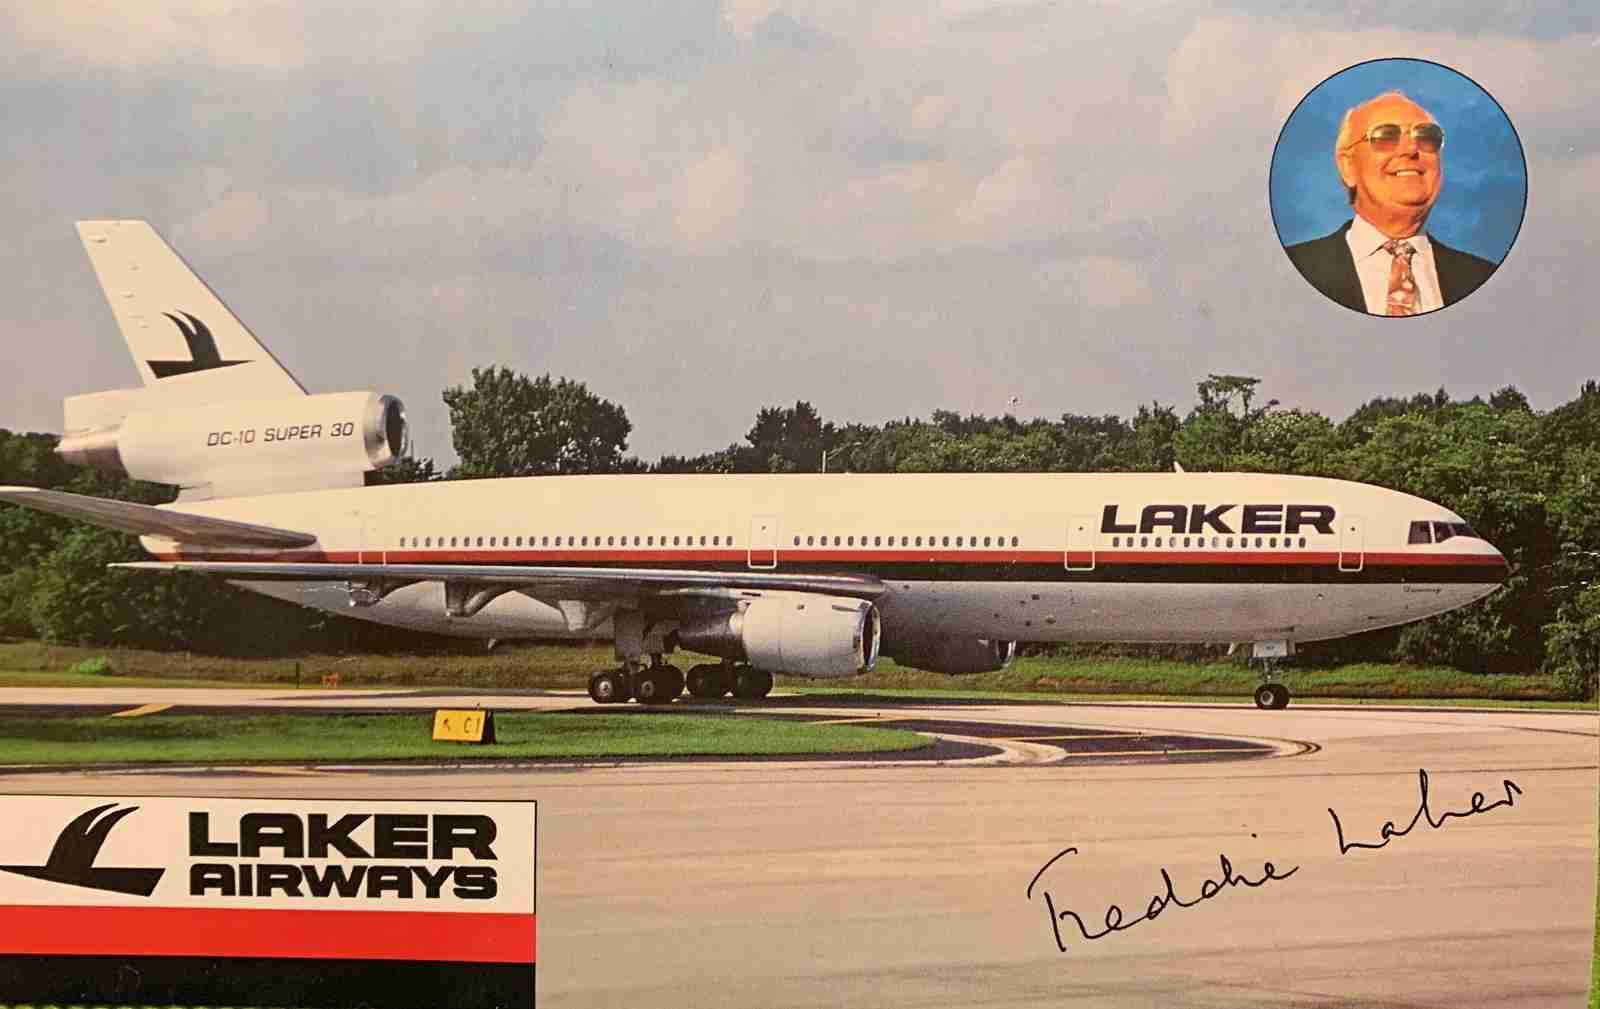 Postcard: The irrepressible Freddie Laker was an airline celebrity in the late '70s.